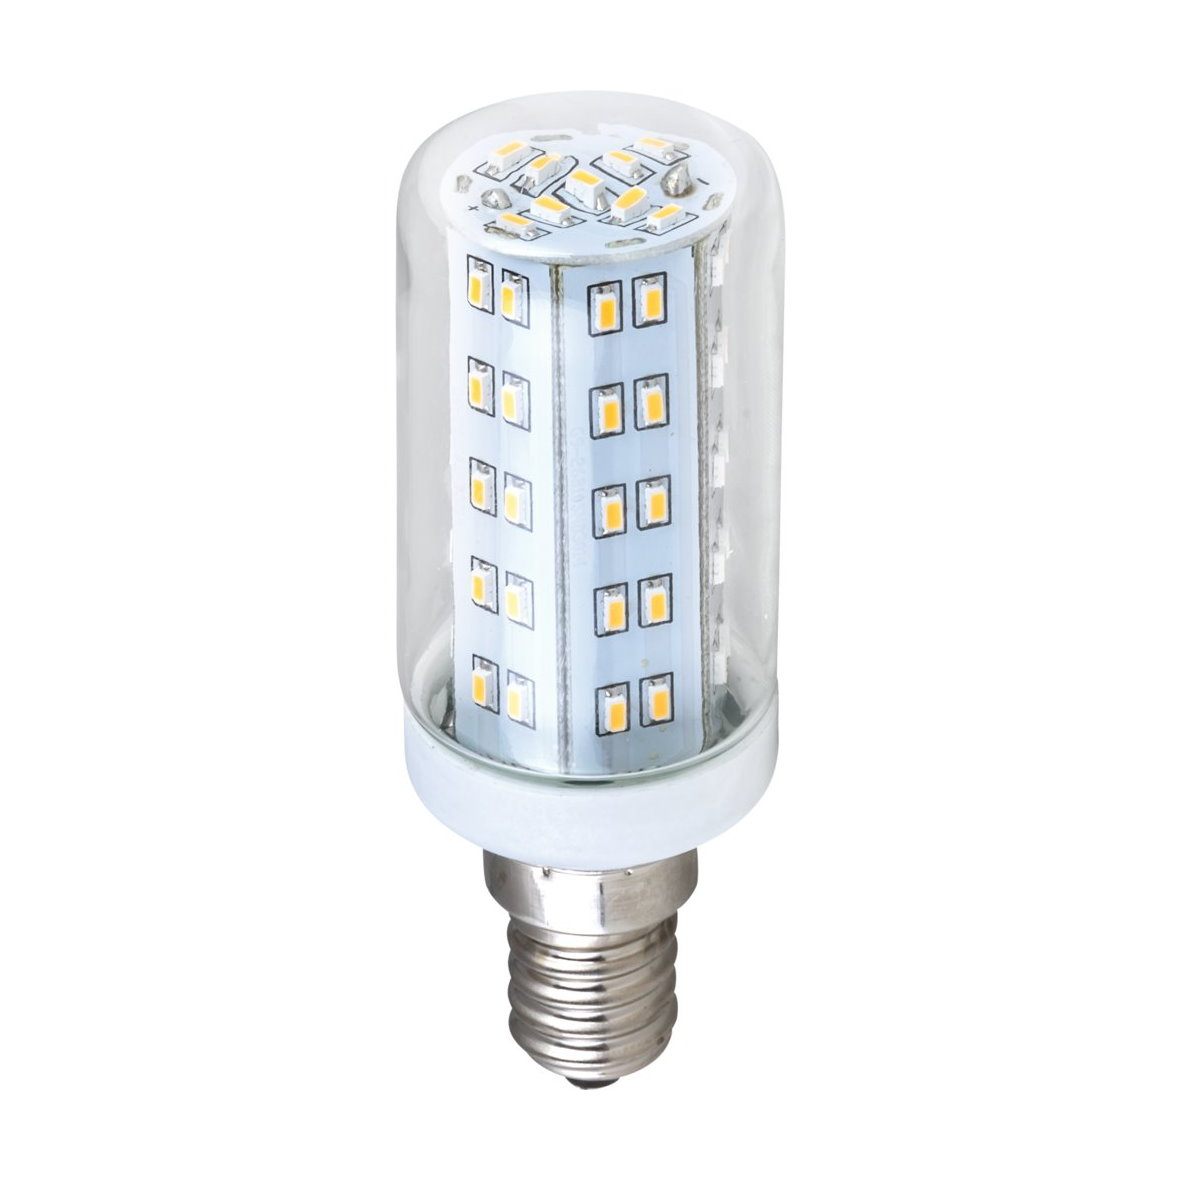 led smd 360 wand lamp dimmable corn light e14 e27 rgb warm white ebay. Black Bedroom Furniture Sets. Home Design Ideas